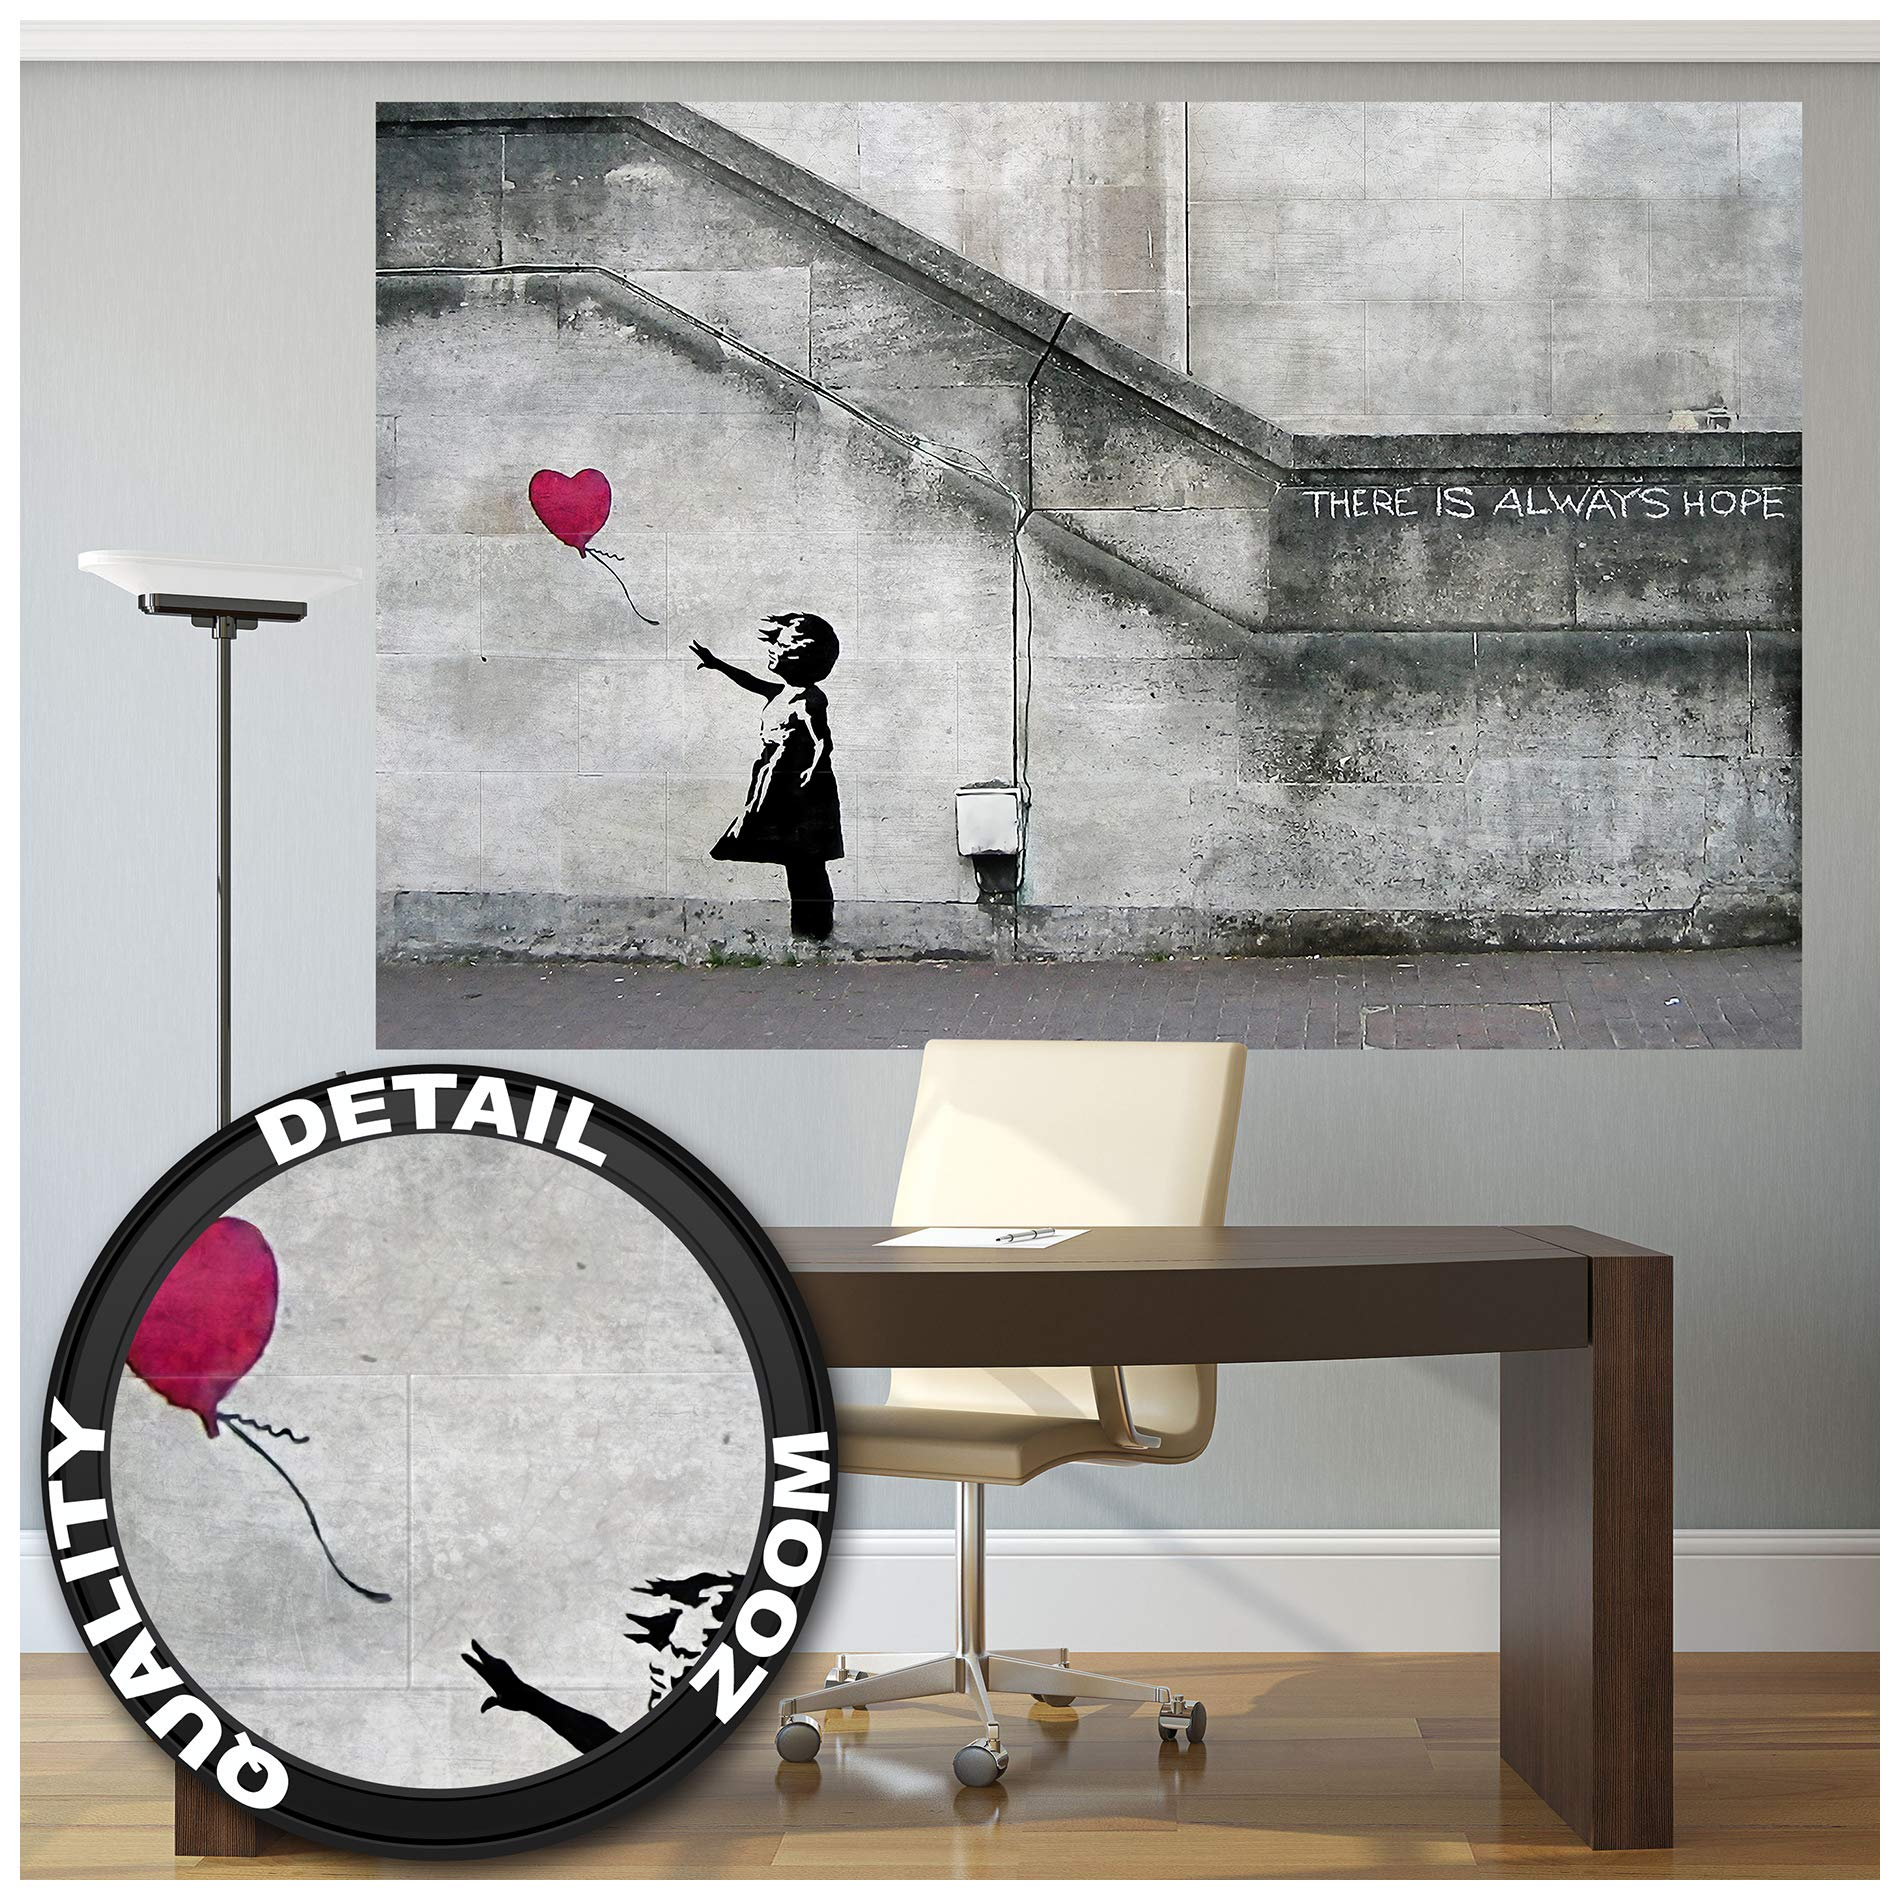 Mural – Banksy Art Balloon Girl – Mural Decoration There is Always Hope Banksy Girl with Balloon Banksy Street Style Stencil Wallpaper Photoposter Wall Decor (82.7 x 55 Inch / 210 x 140 cm)